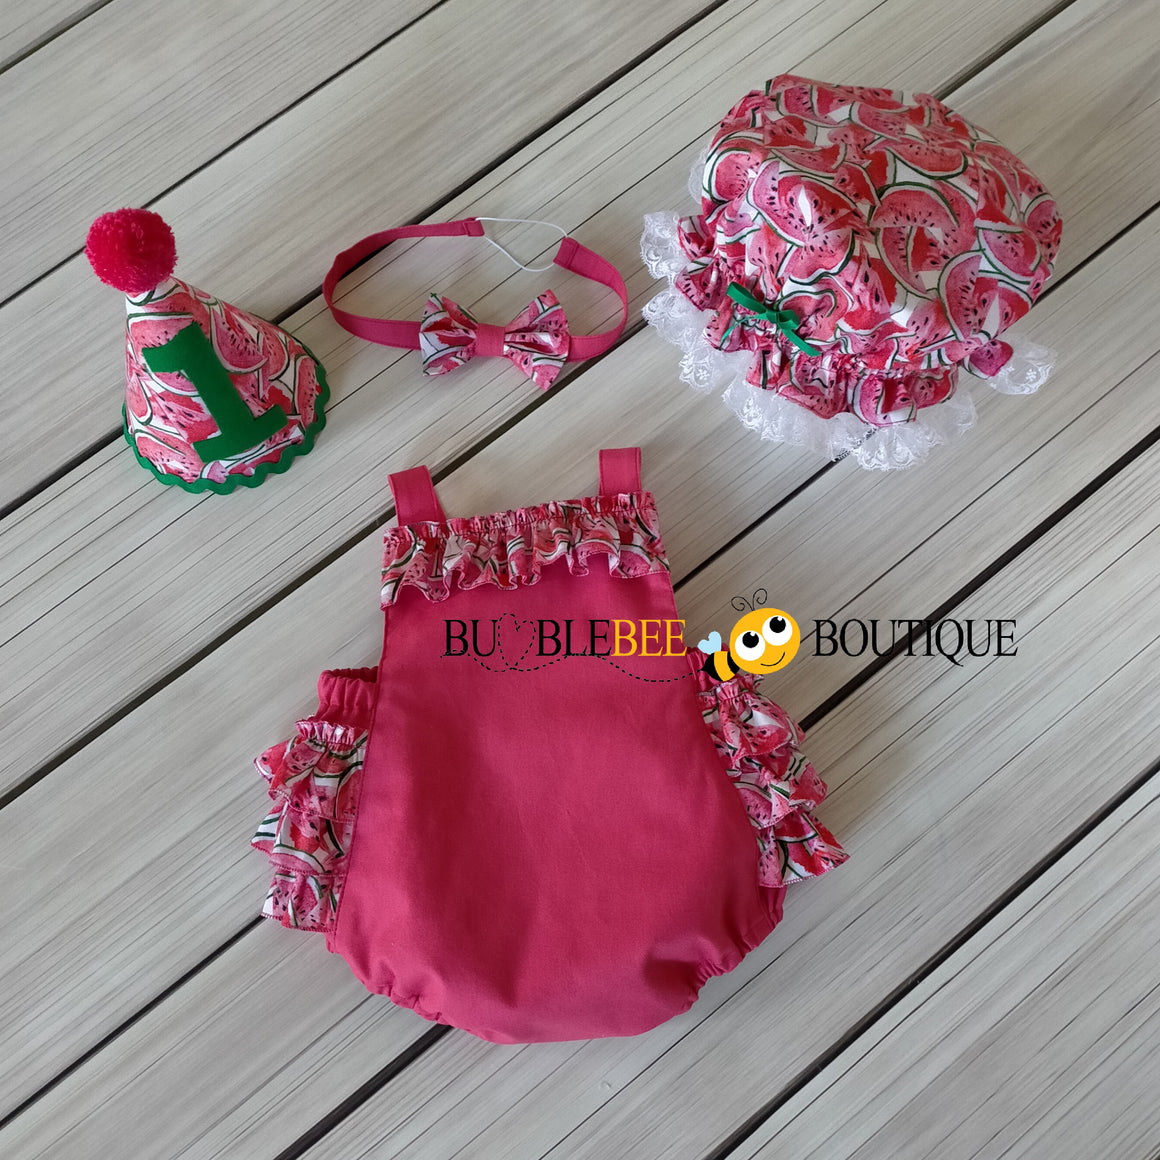 Luscious Watermelon Girls' Cake Smash Outfit - romper, headband, party hat & frilly mob cap (Shower cap) by Bumblebee Boutique